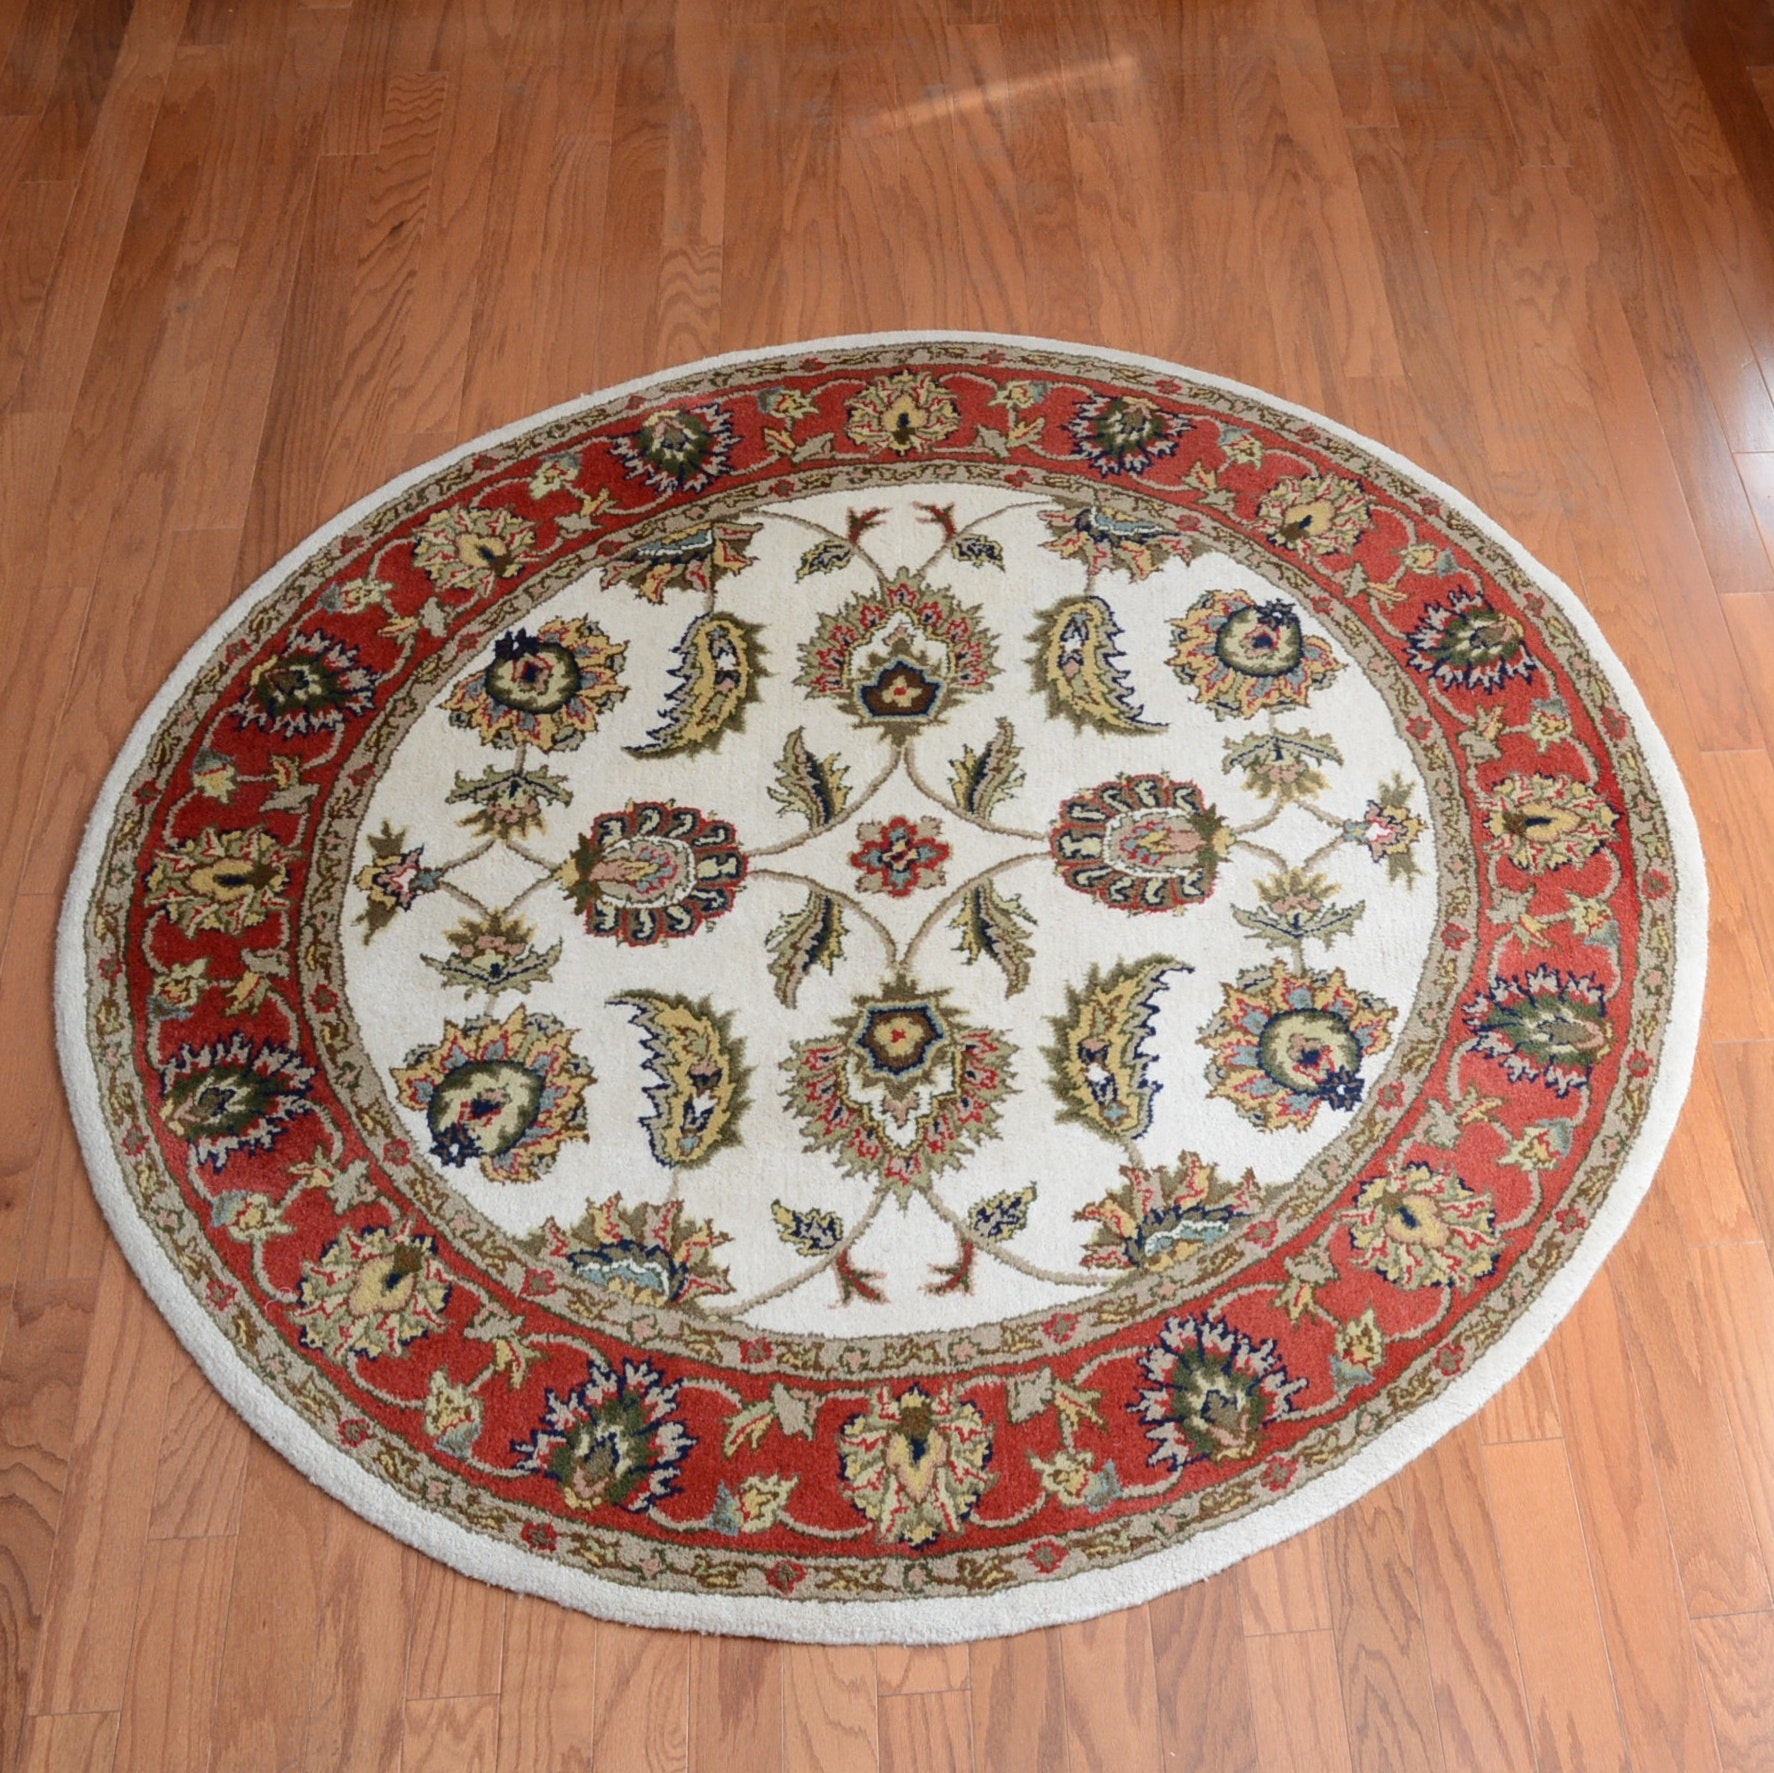 Machine-Tufted Persian-Style Round Accent Rug